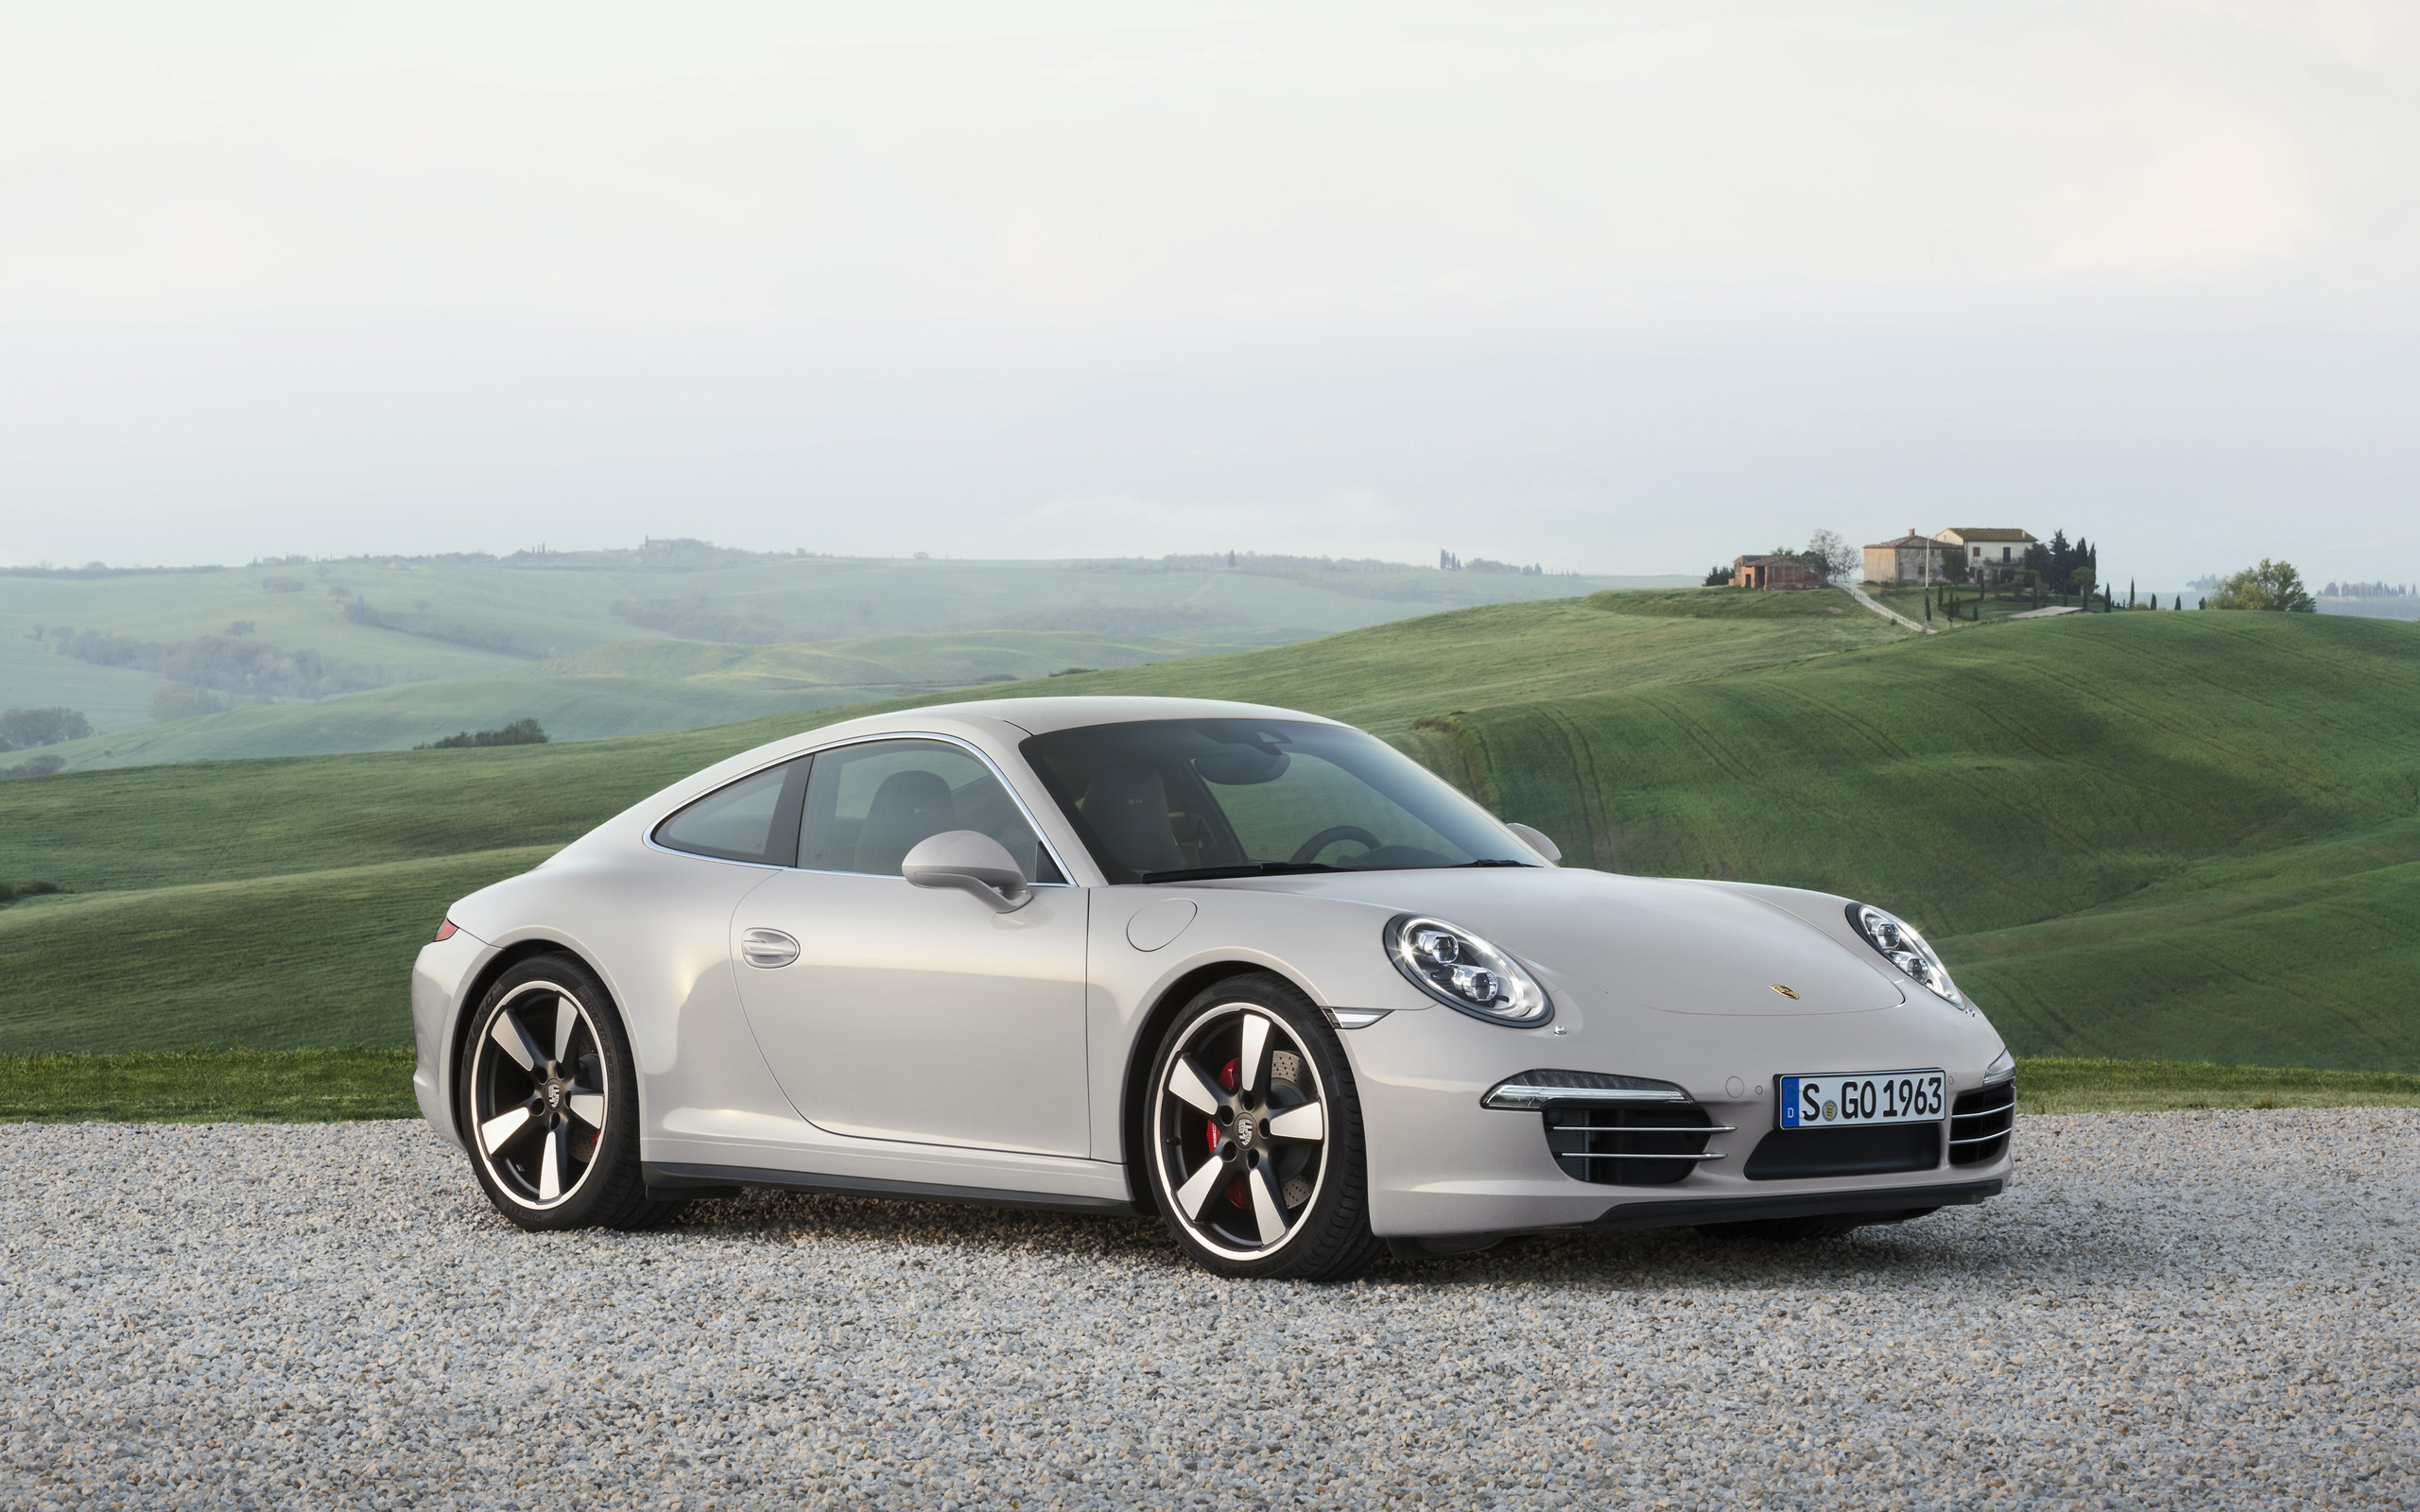 2013 porsche 911 50th anniversary edition - Porsche 911 Wallpaper Widescreen